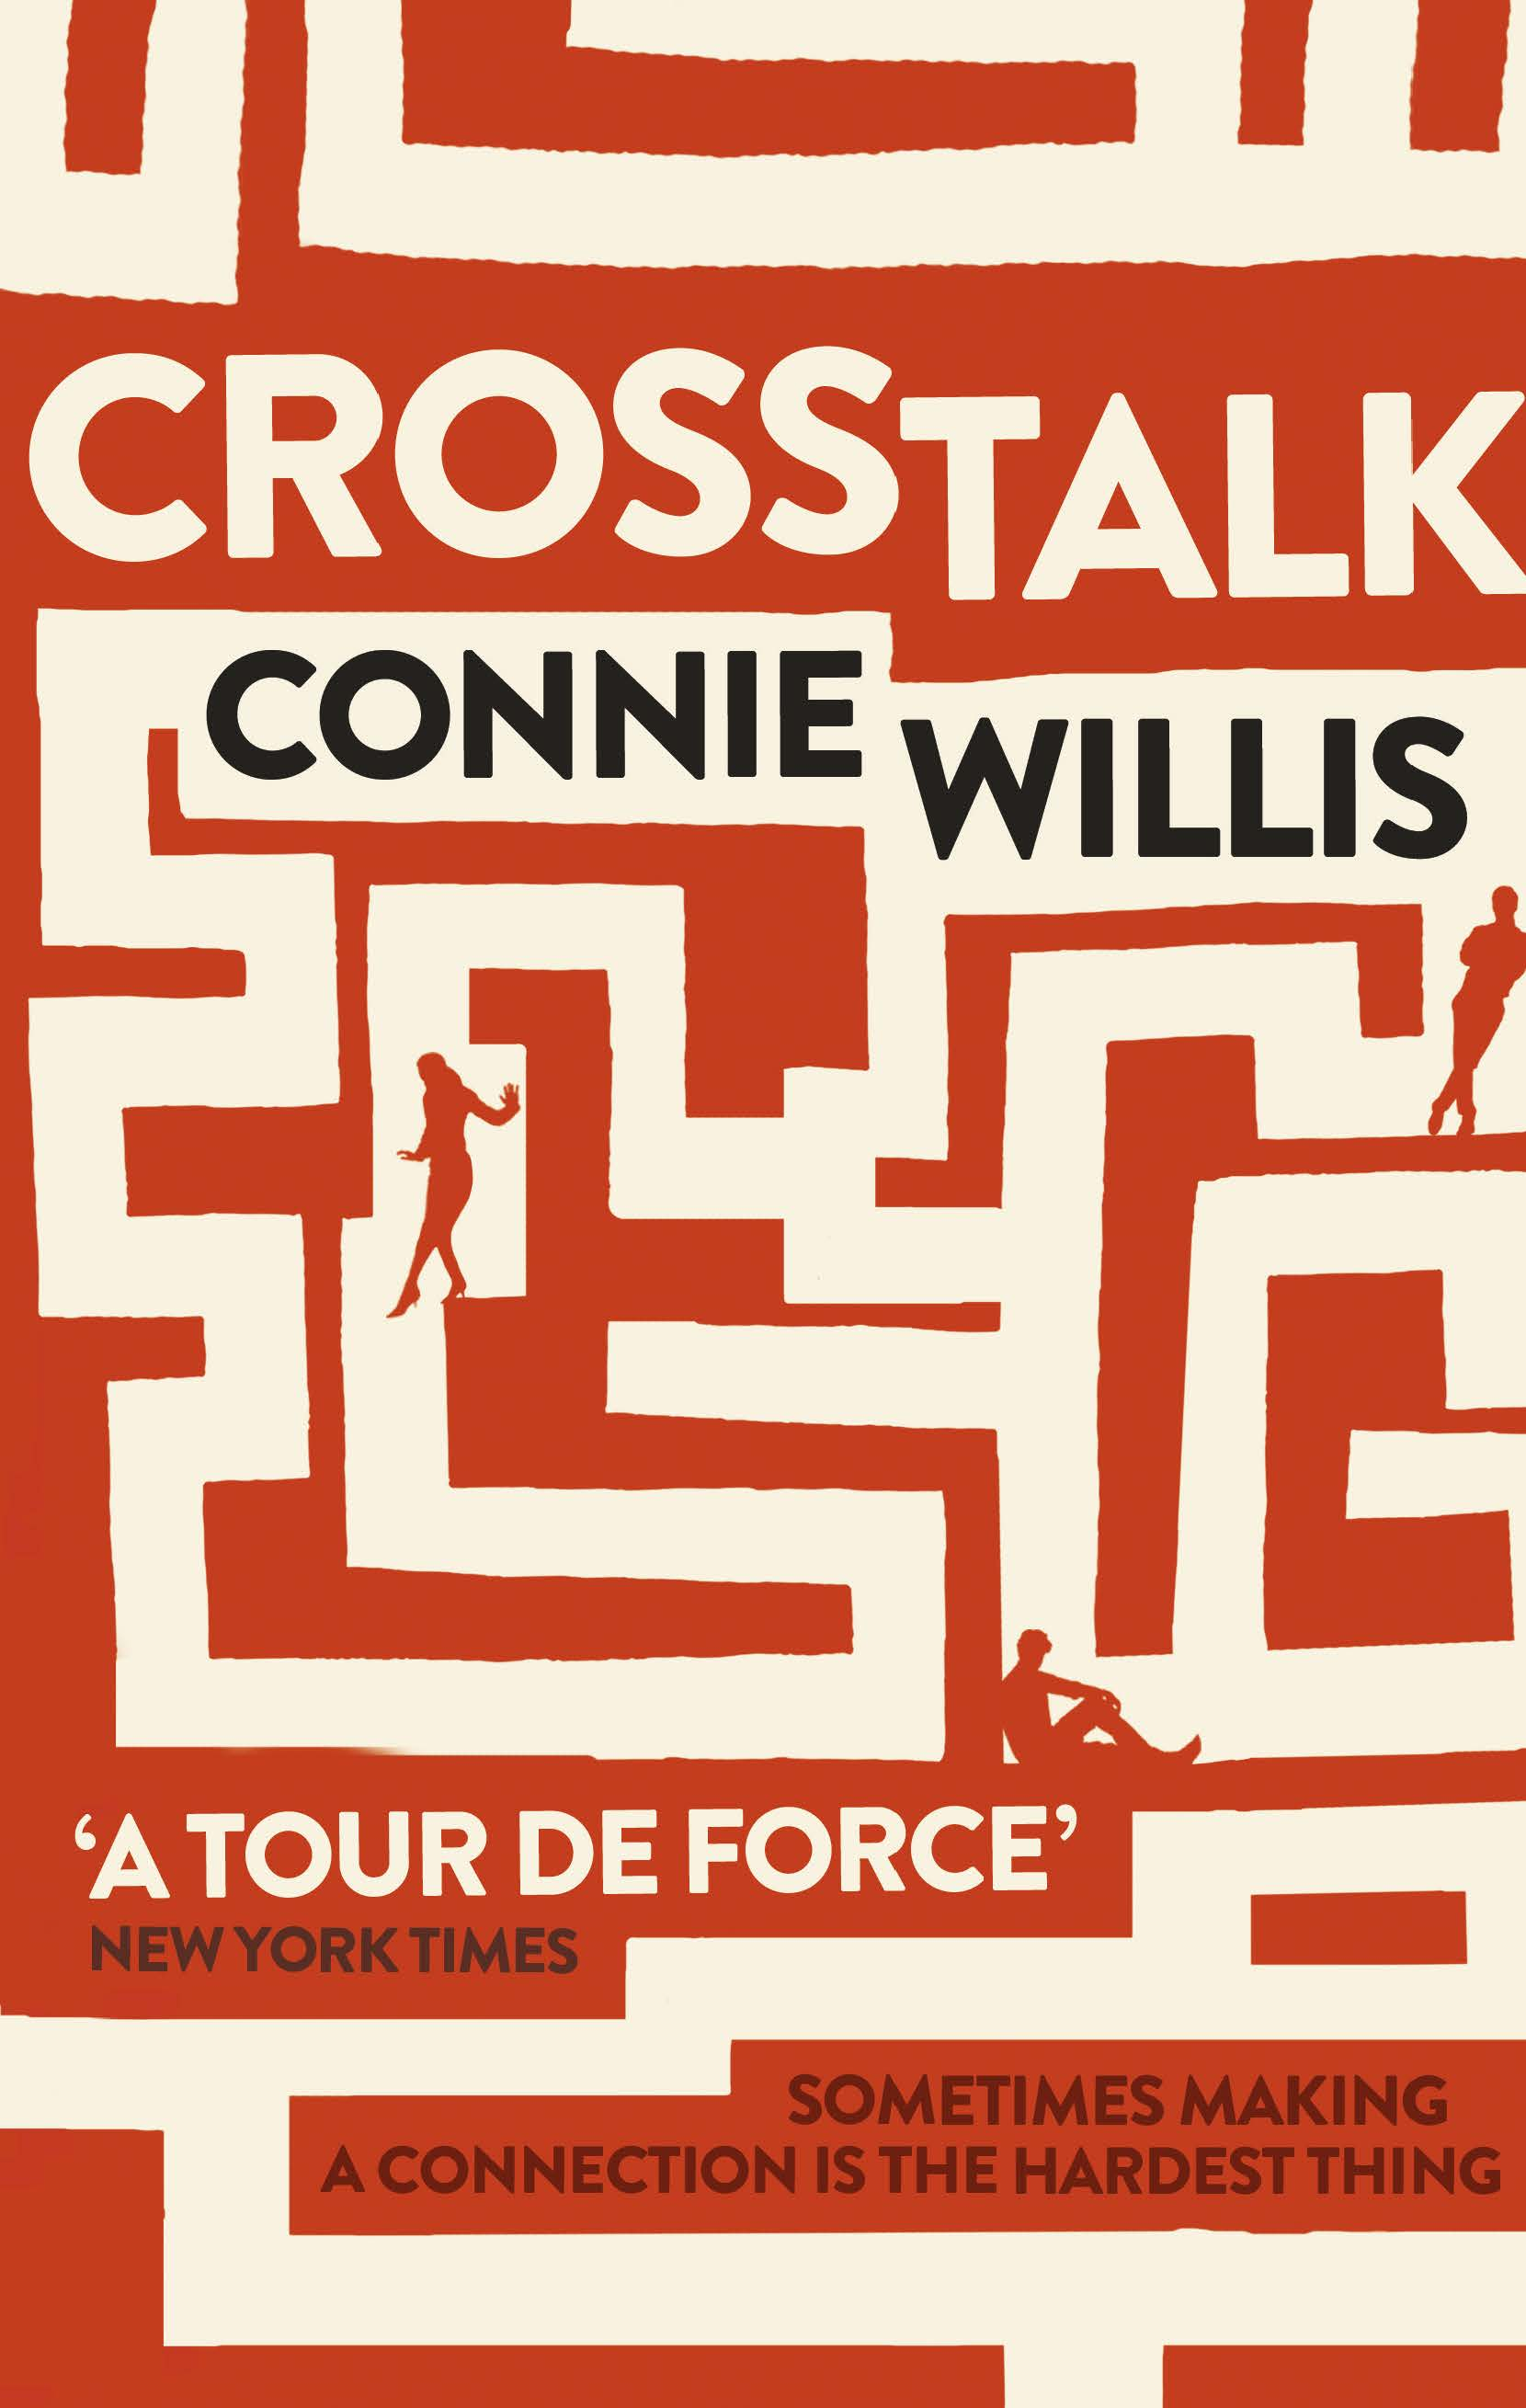 Connie Willis Net Ships Tall Google Search Book Covers Diagrams Bloody Crosstalk Uk